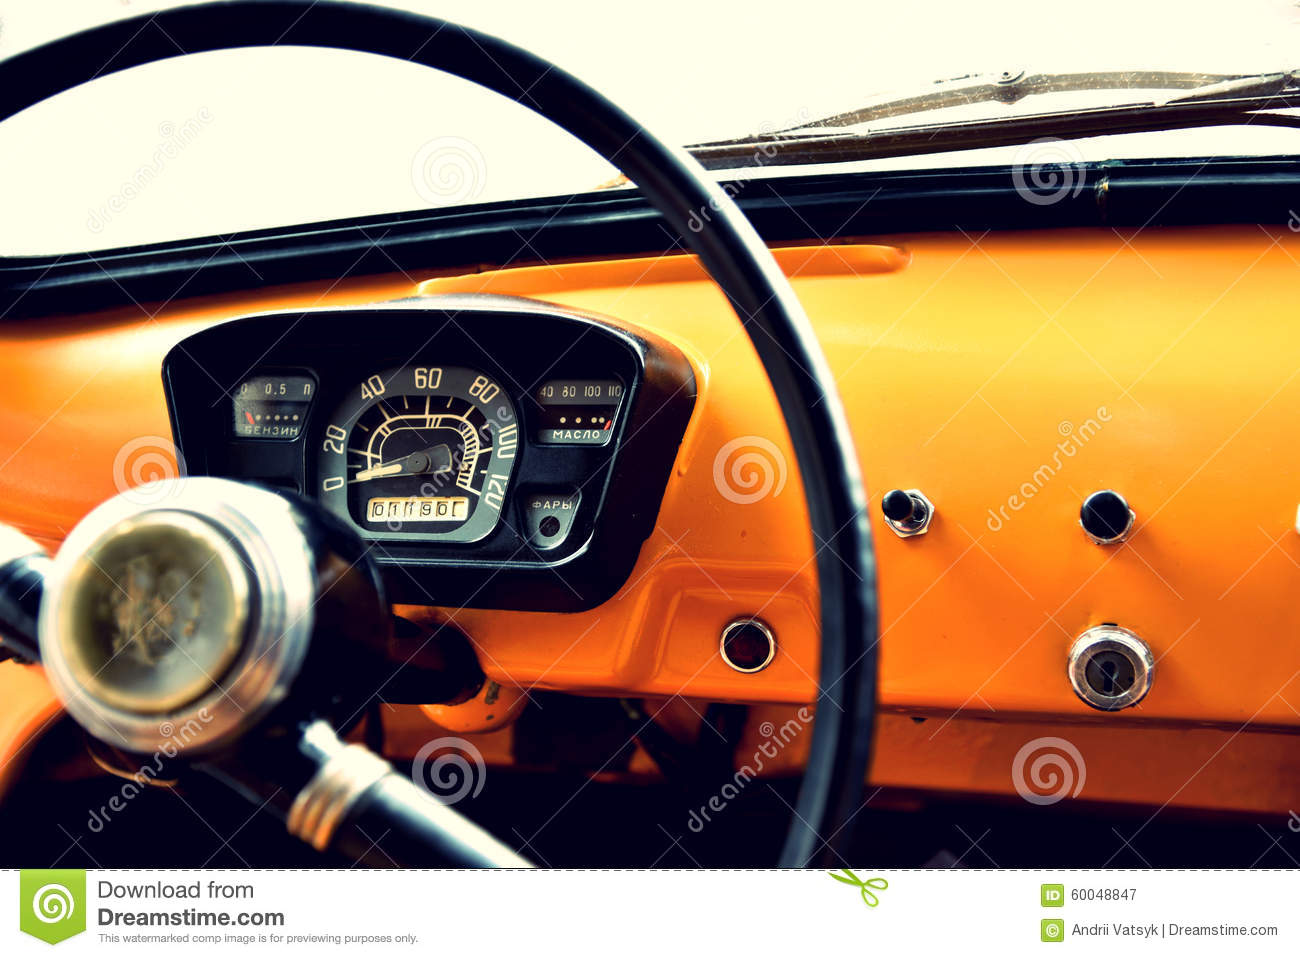 fragment of interior retro car with speedometer toggle switches stock image image of button. Black Bedroom Furniture Sets. Home Design Ideas